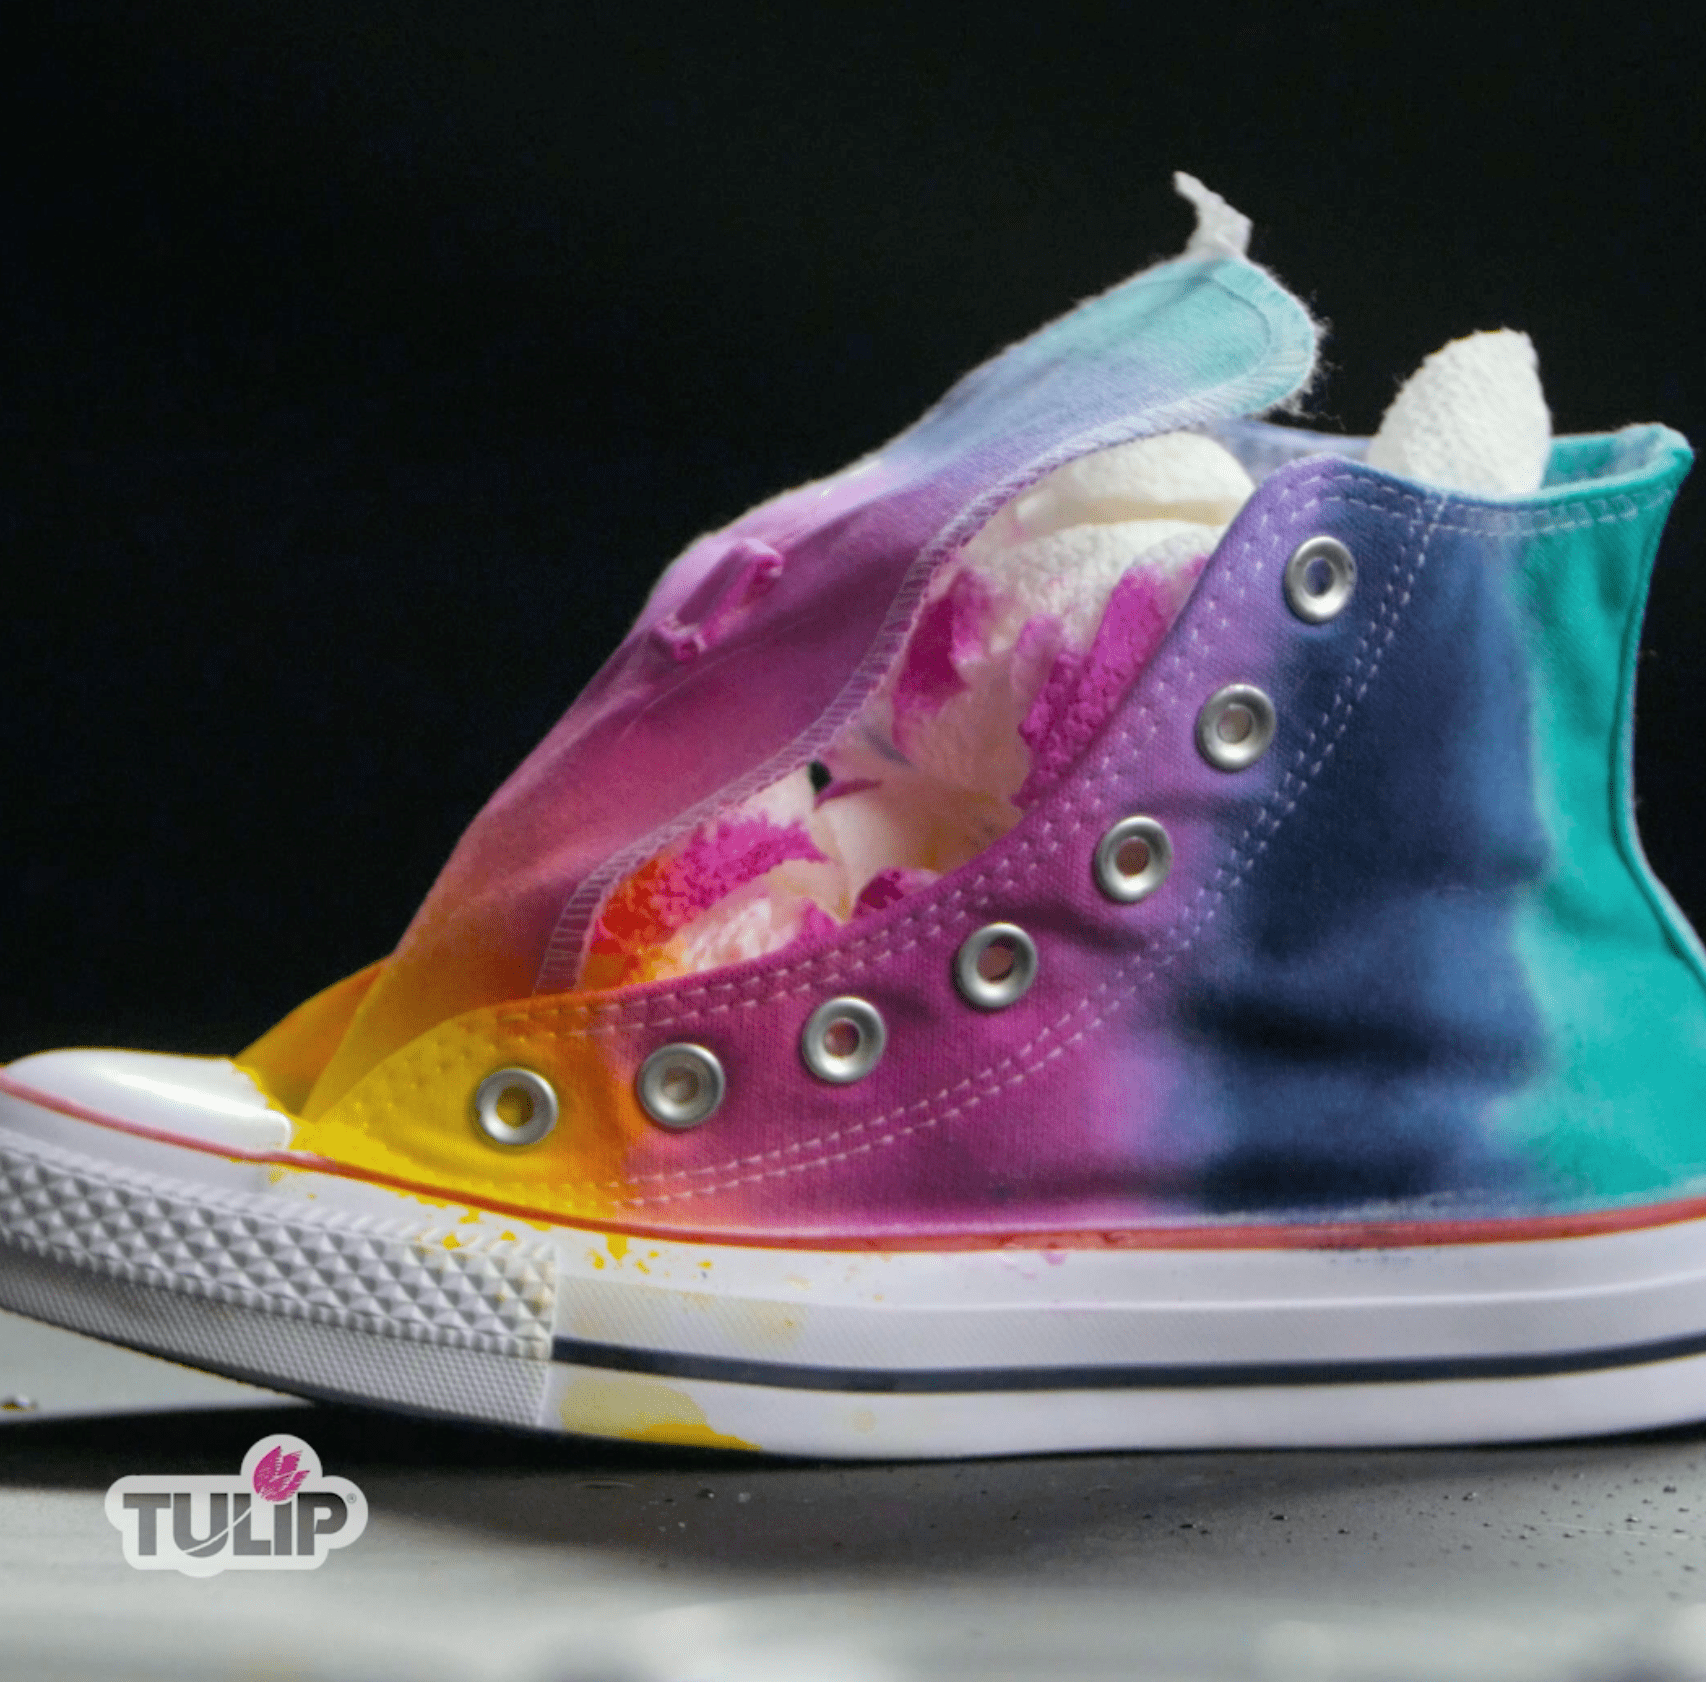 Rainbow Tie-Dye Shoes wrap and set to saturate dyes